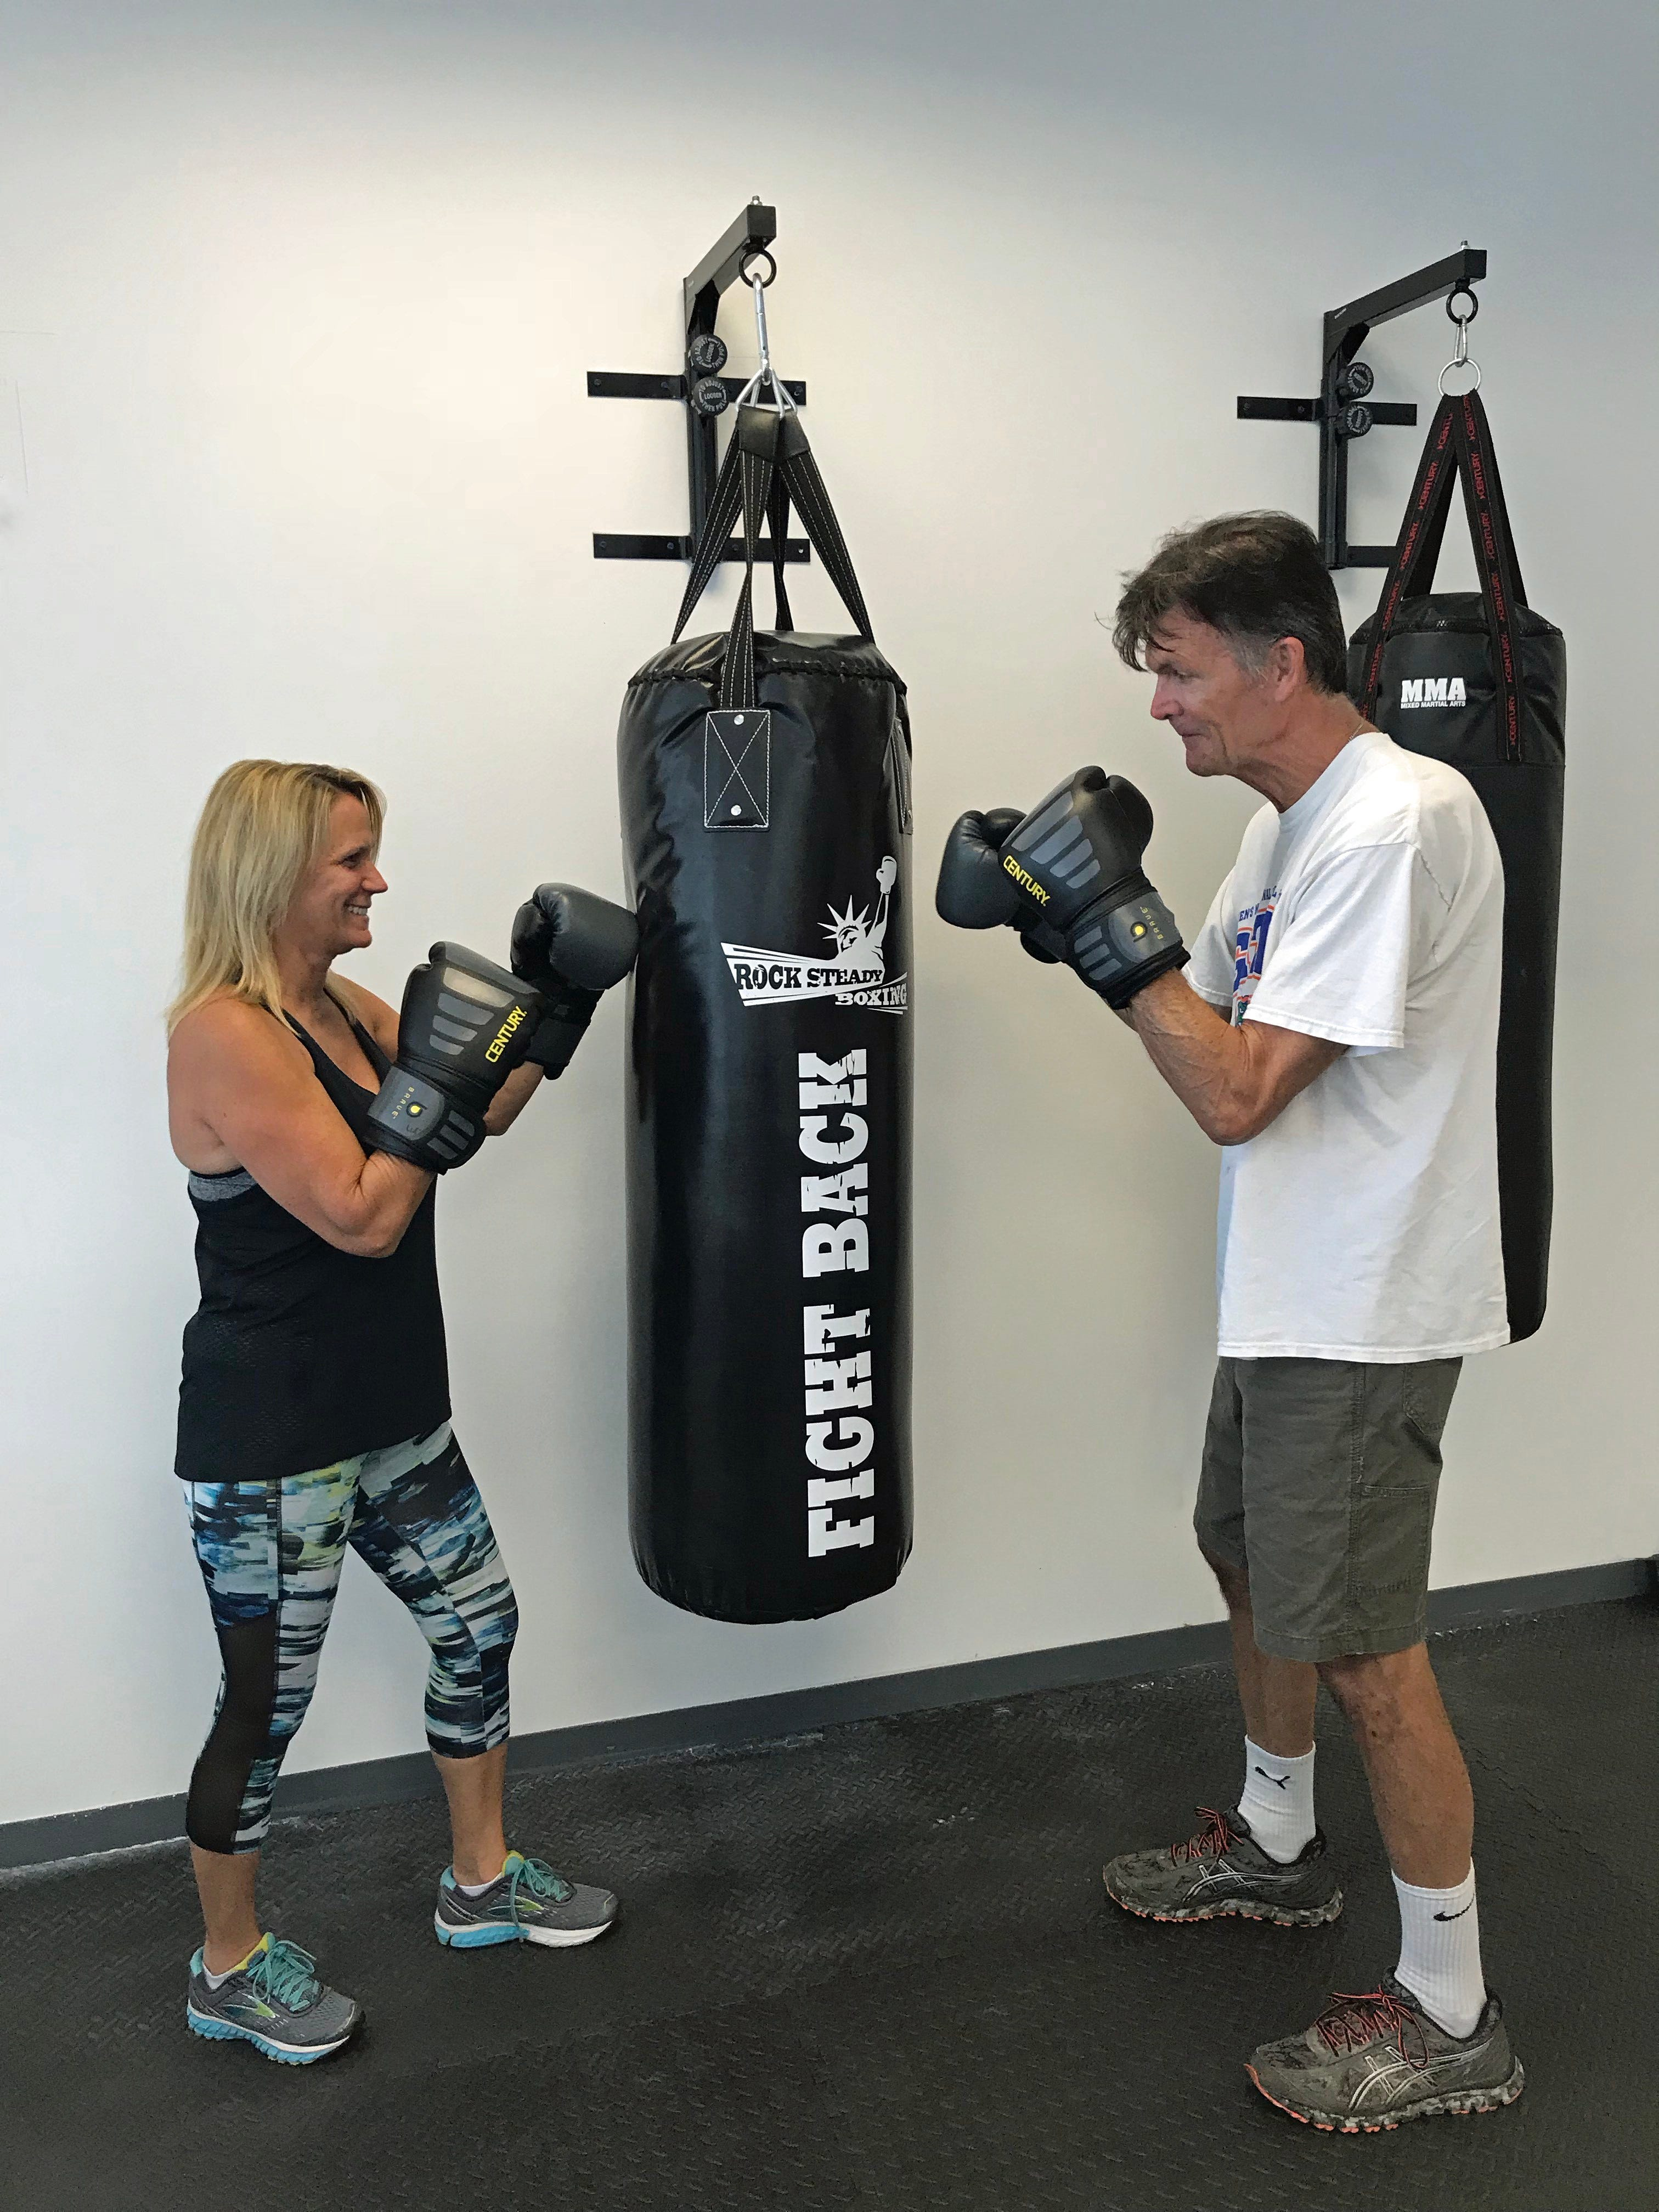 636592891782769522-Janice-Moia-Rock-Steady-Boxing-trainer Program gives Parkinson's patients a fighting chance